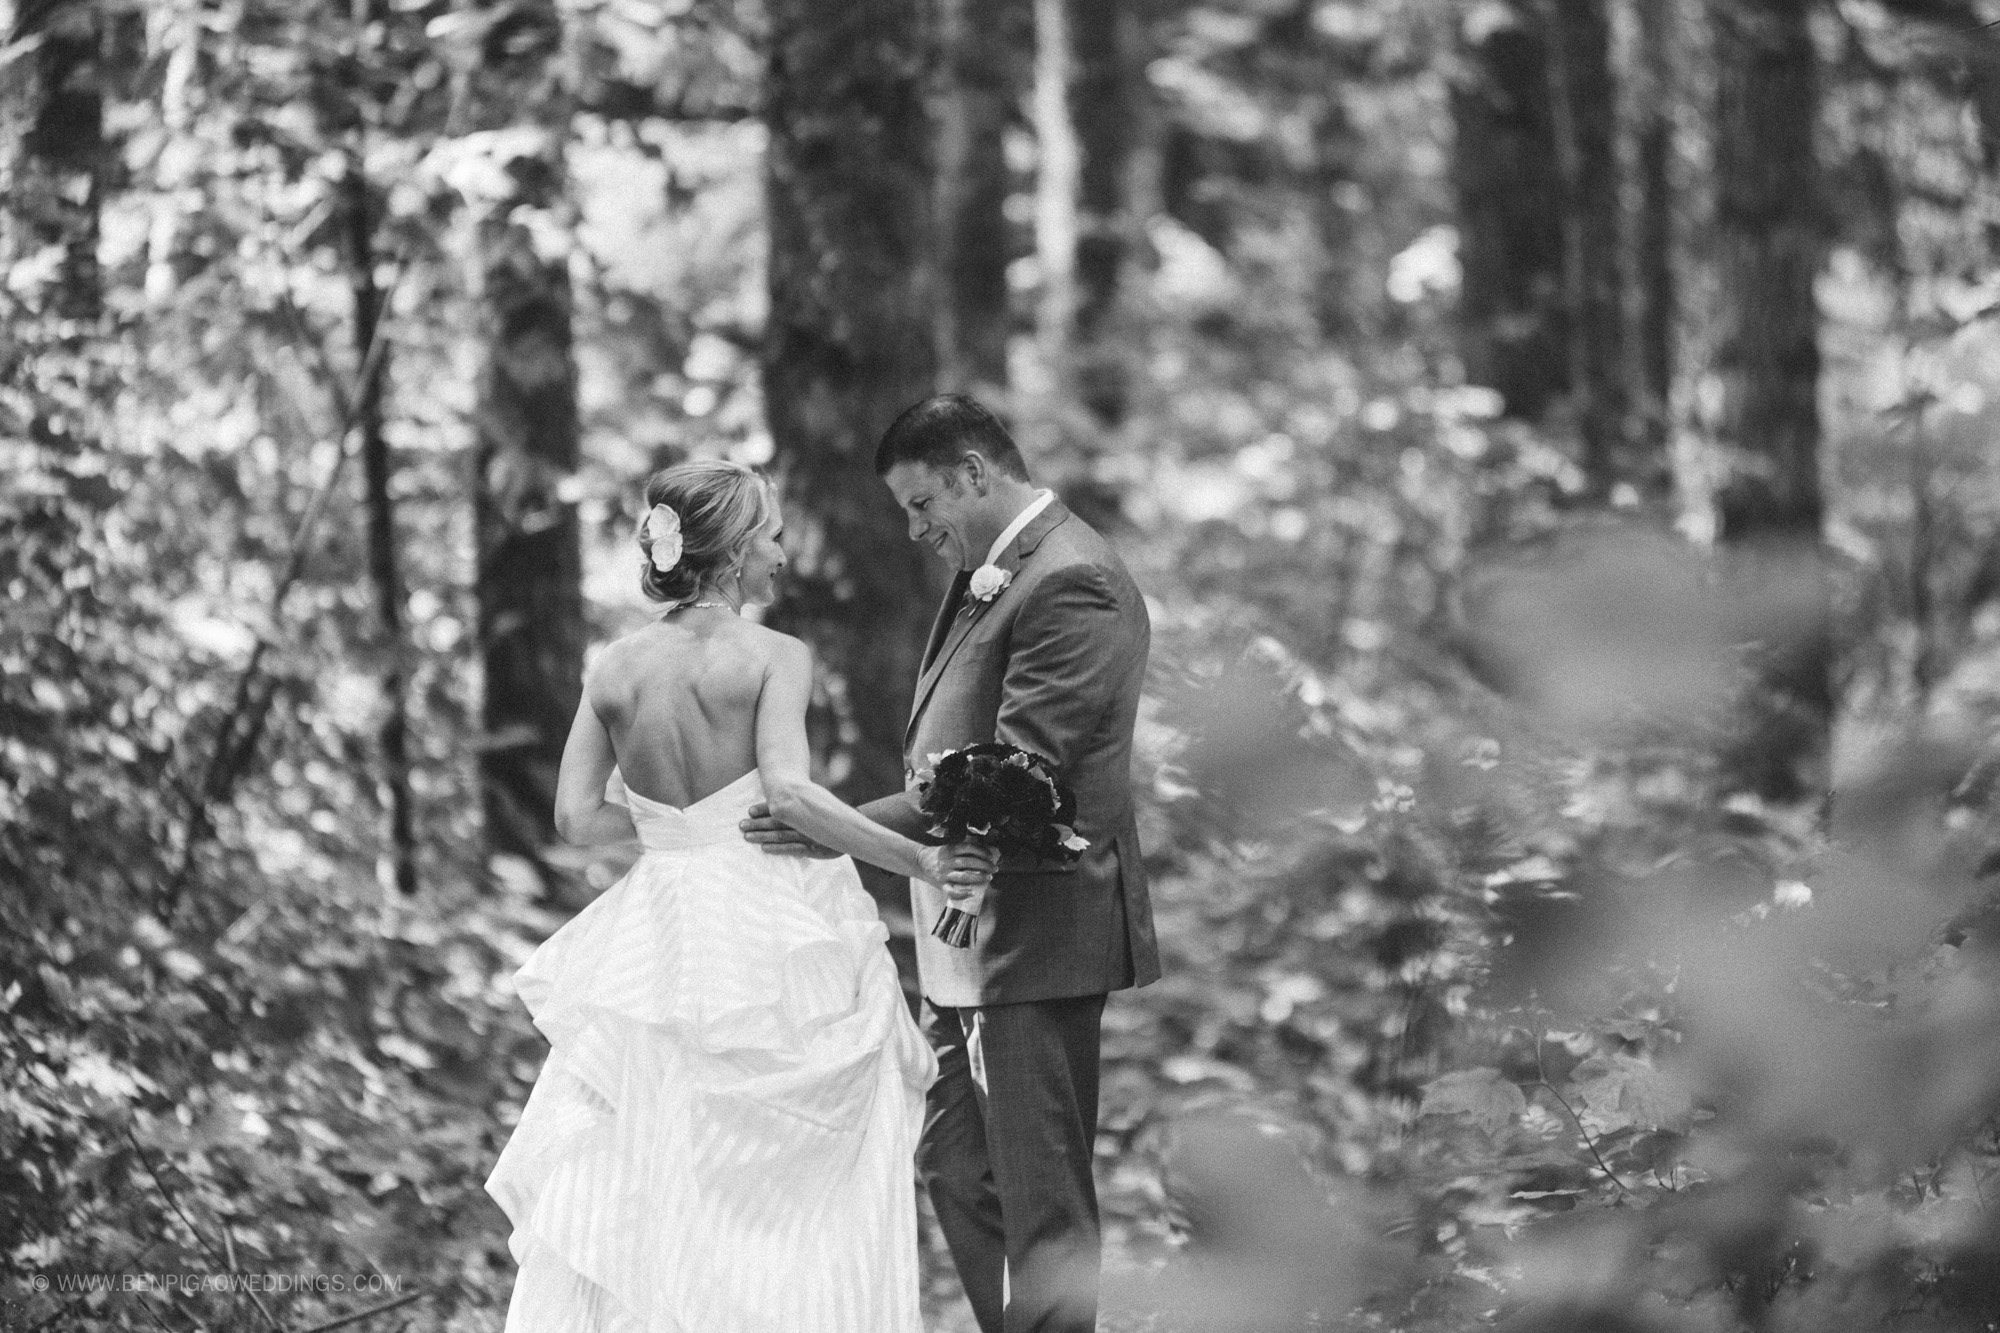 Bridalbliss.com | Columbia Gorge Wedding | Washington Event Planning and Design | Ben Pigao Photography